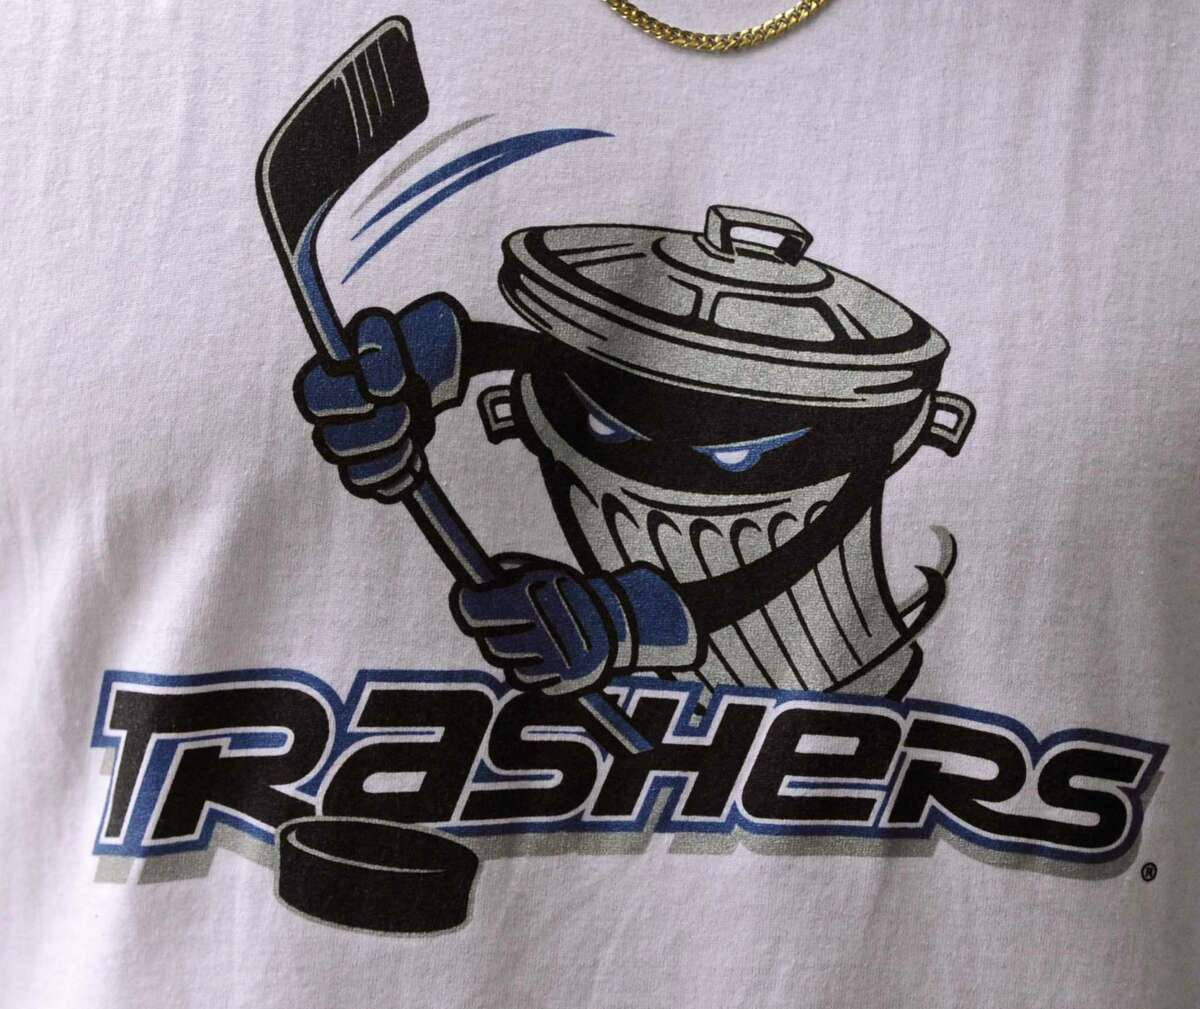 The Danbury Trashers logo on a jersey worn by A.J. Galante. Galante's father, James Galante, bought the minor league hockey expansion team years ago.